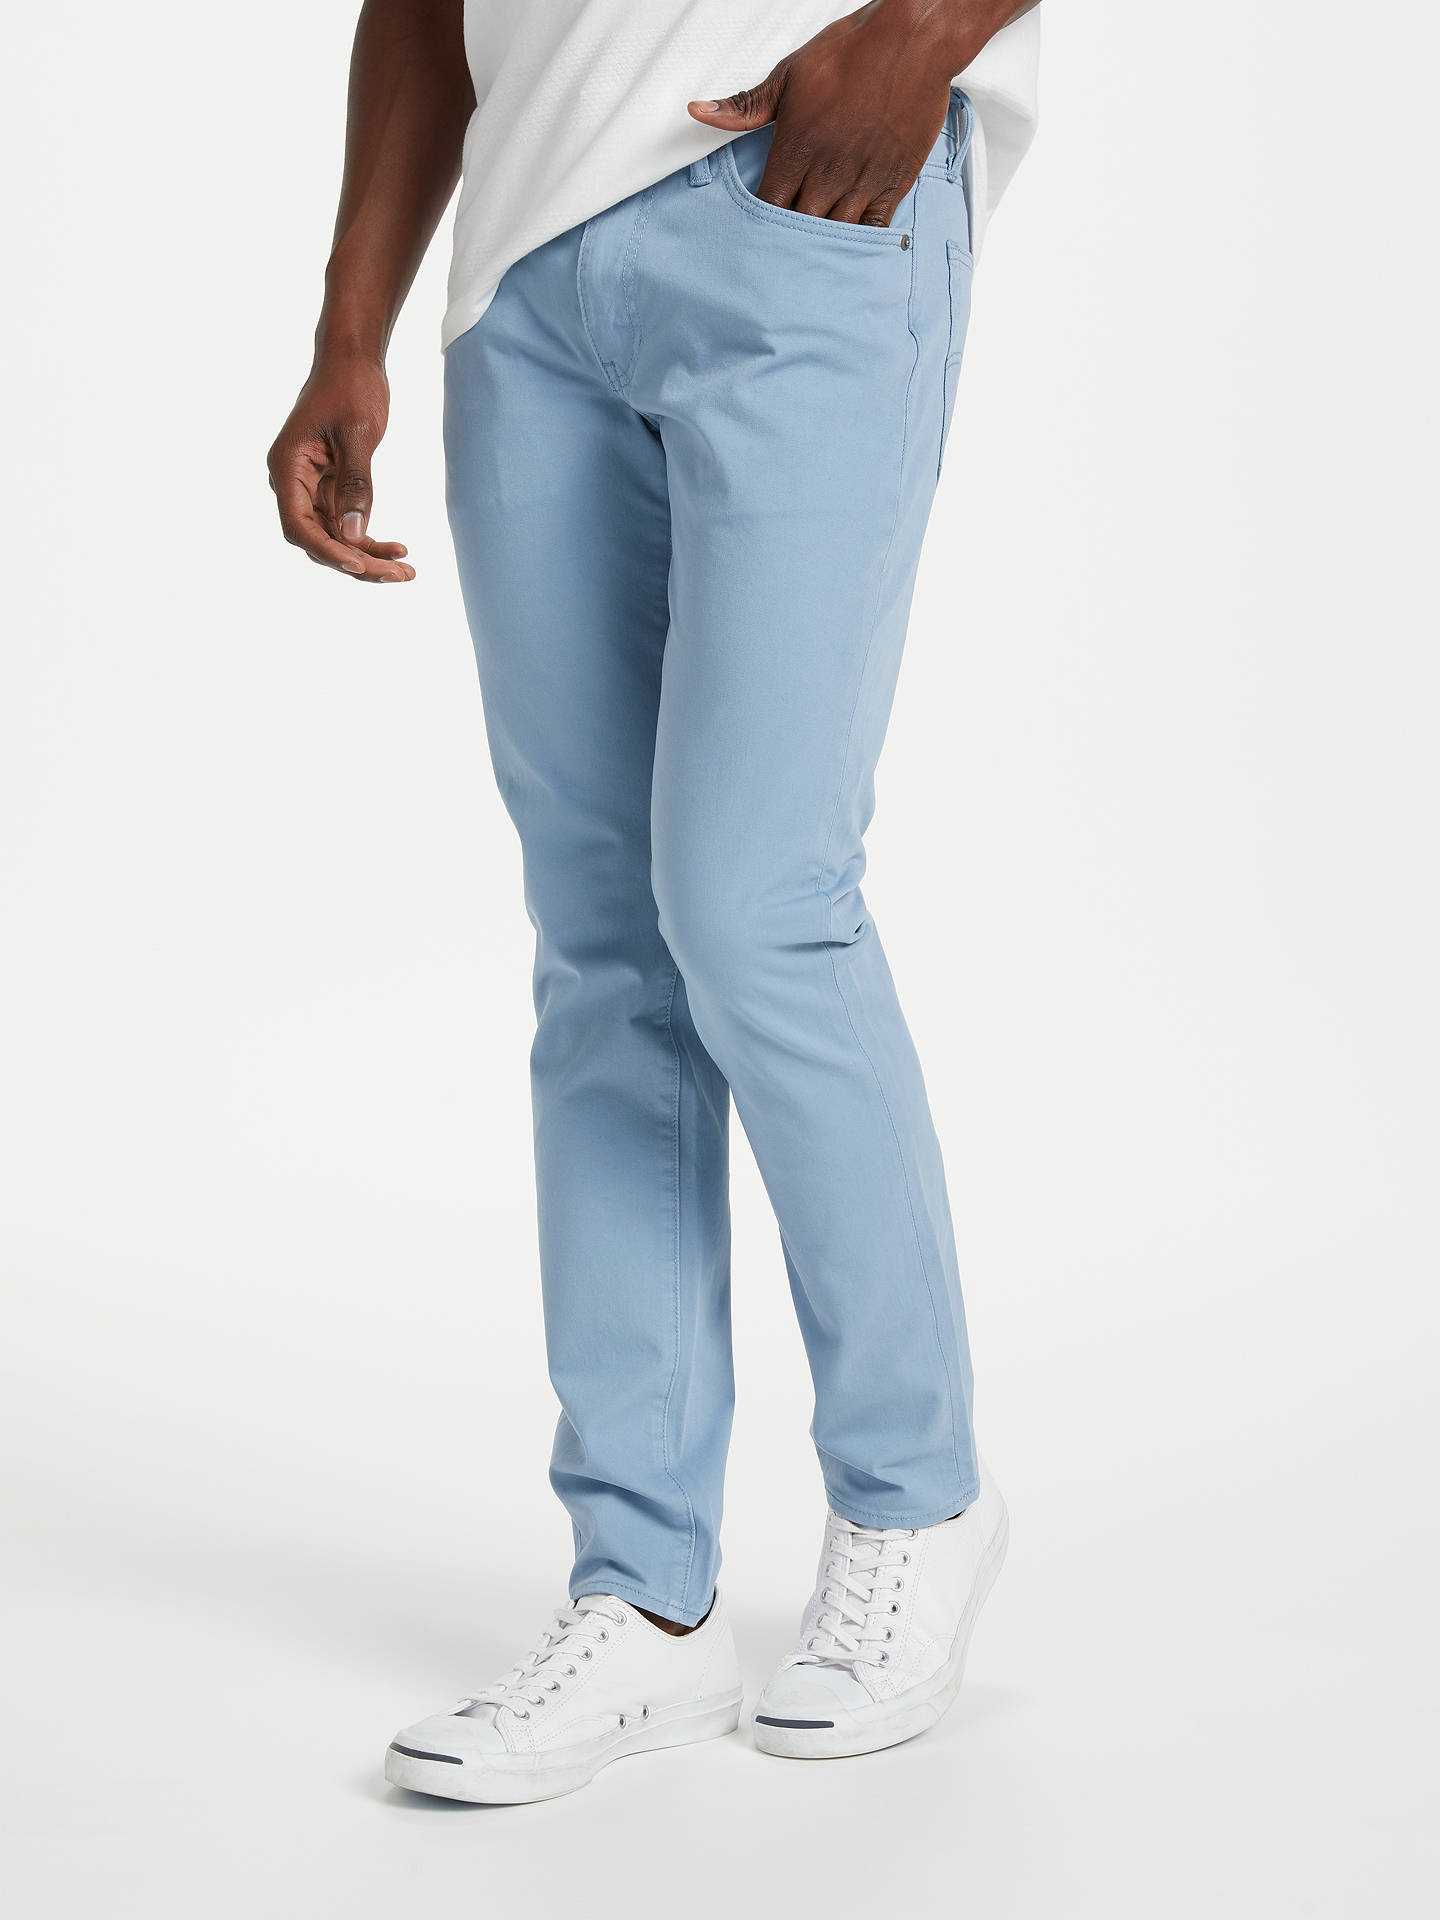 535b508f Levi's 511 Slim Fit Chinos, Moss Blue at John Lewis & Partners